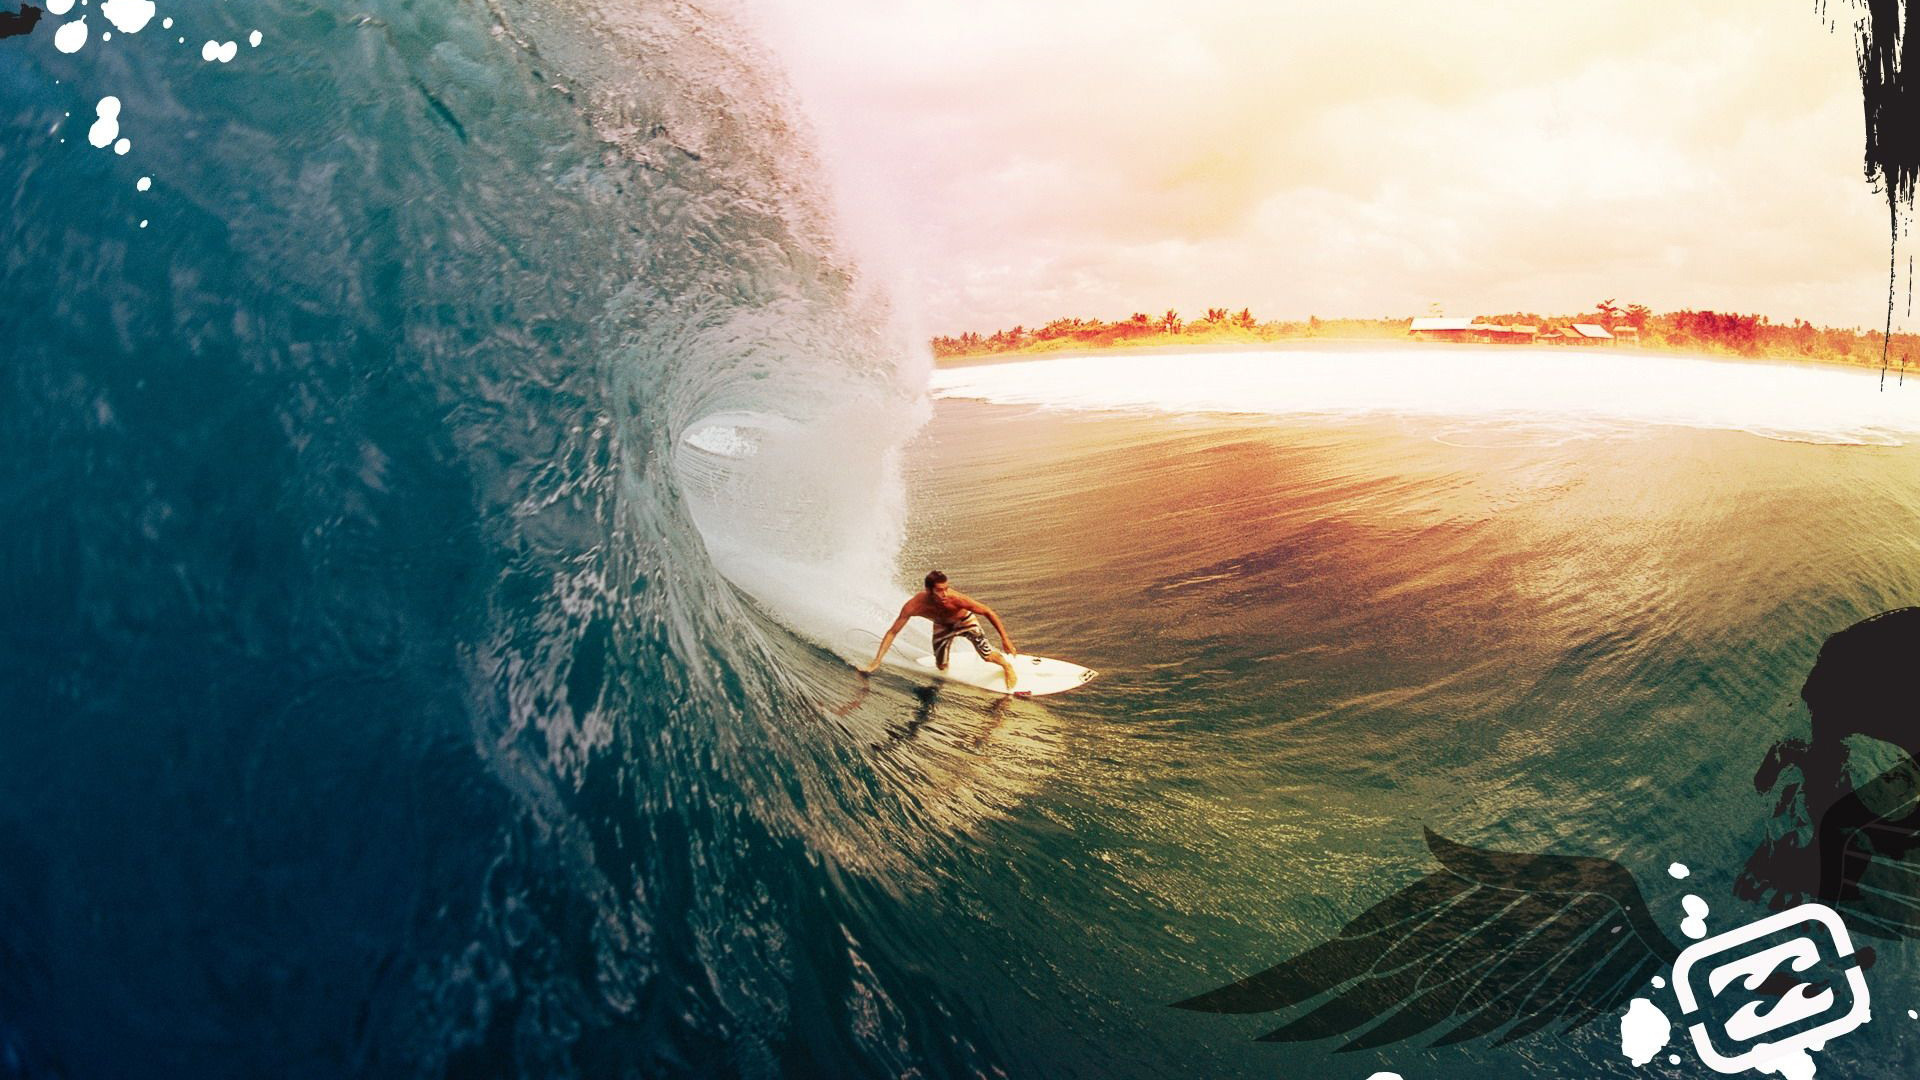 1920x1080 Surfer surfing 1080p Full HD desktop background